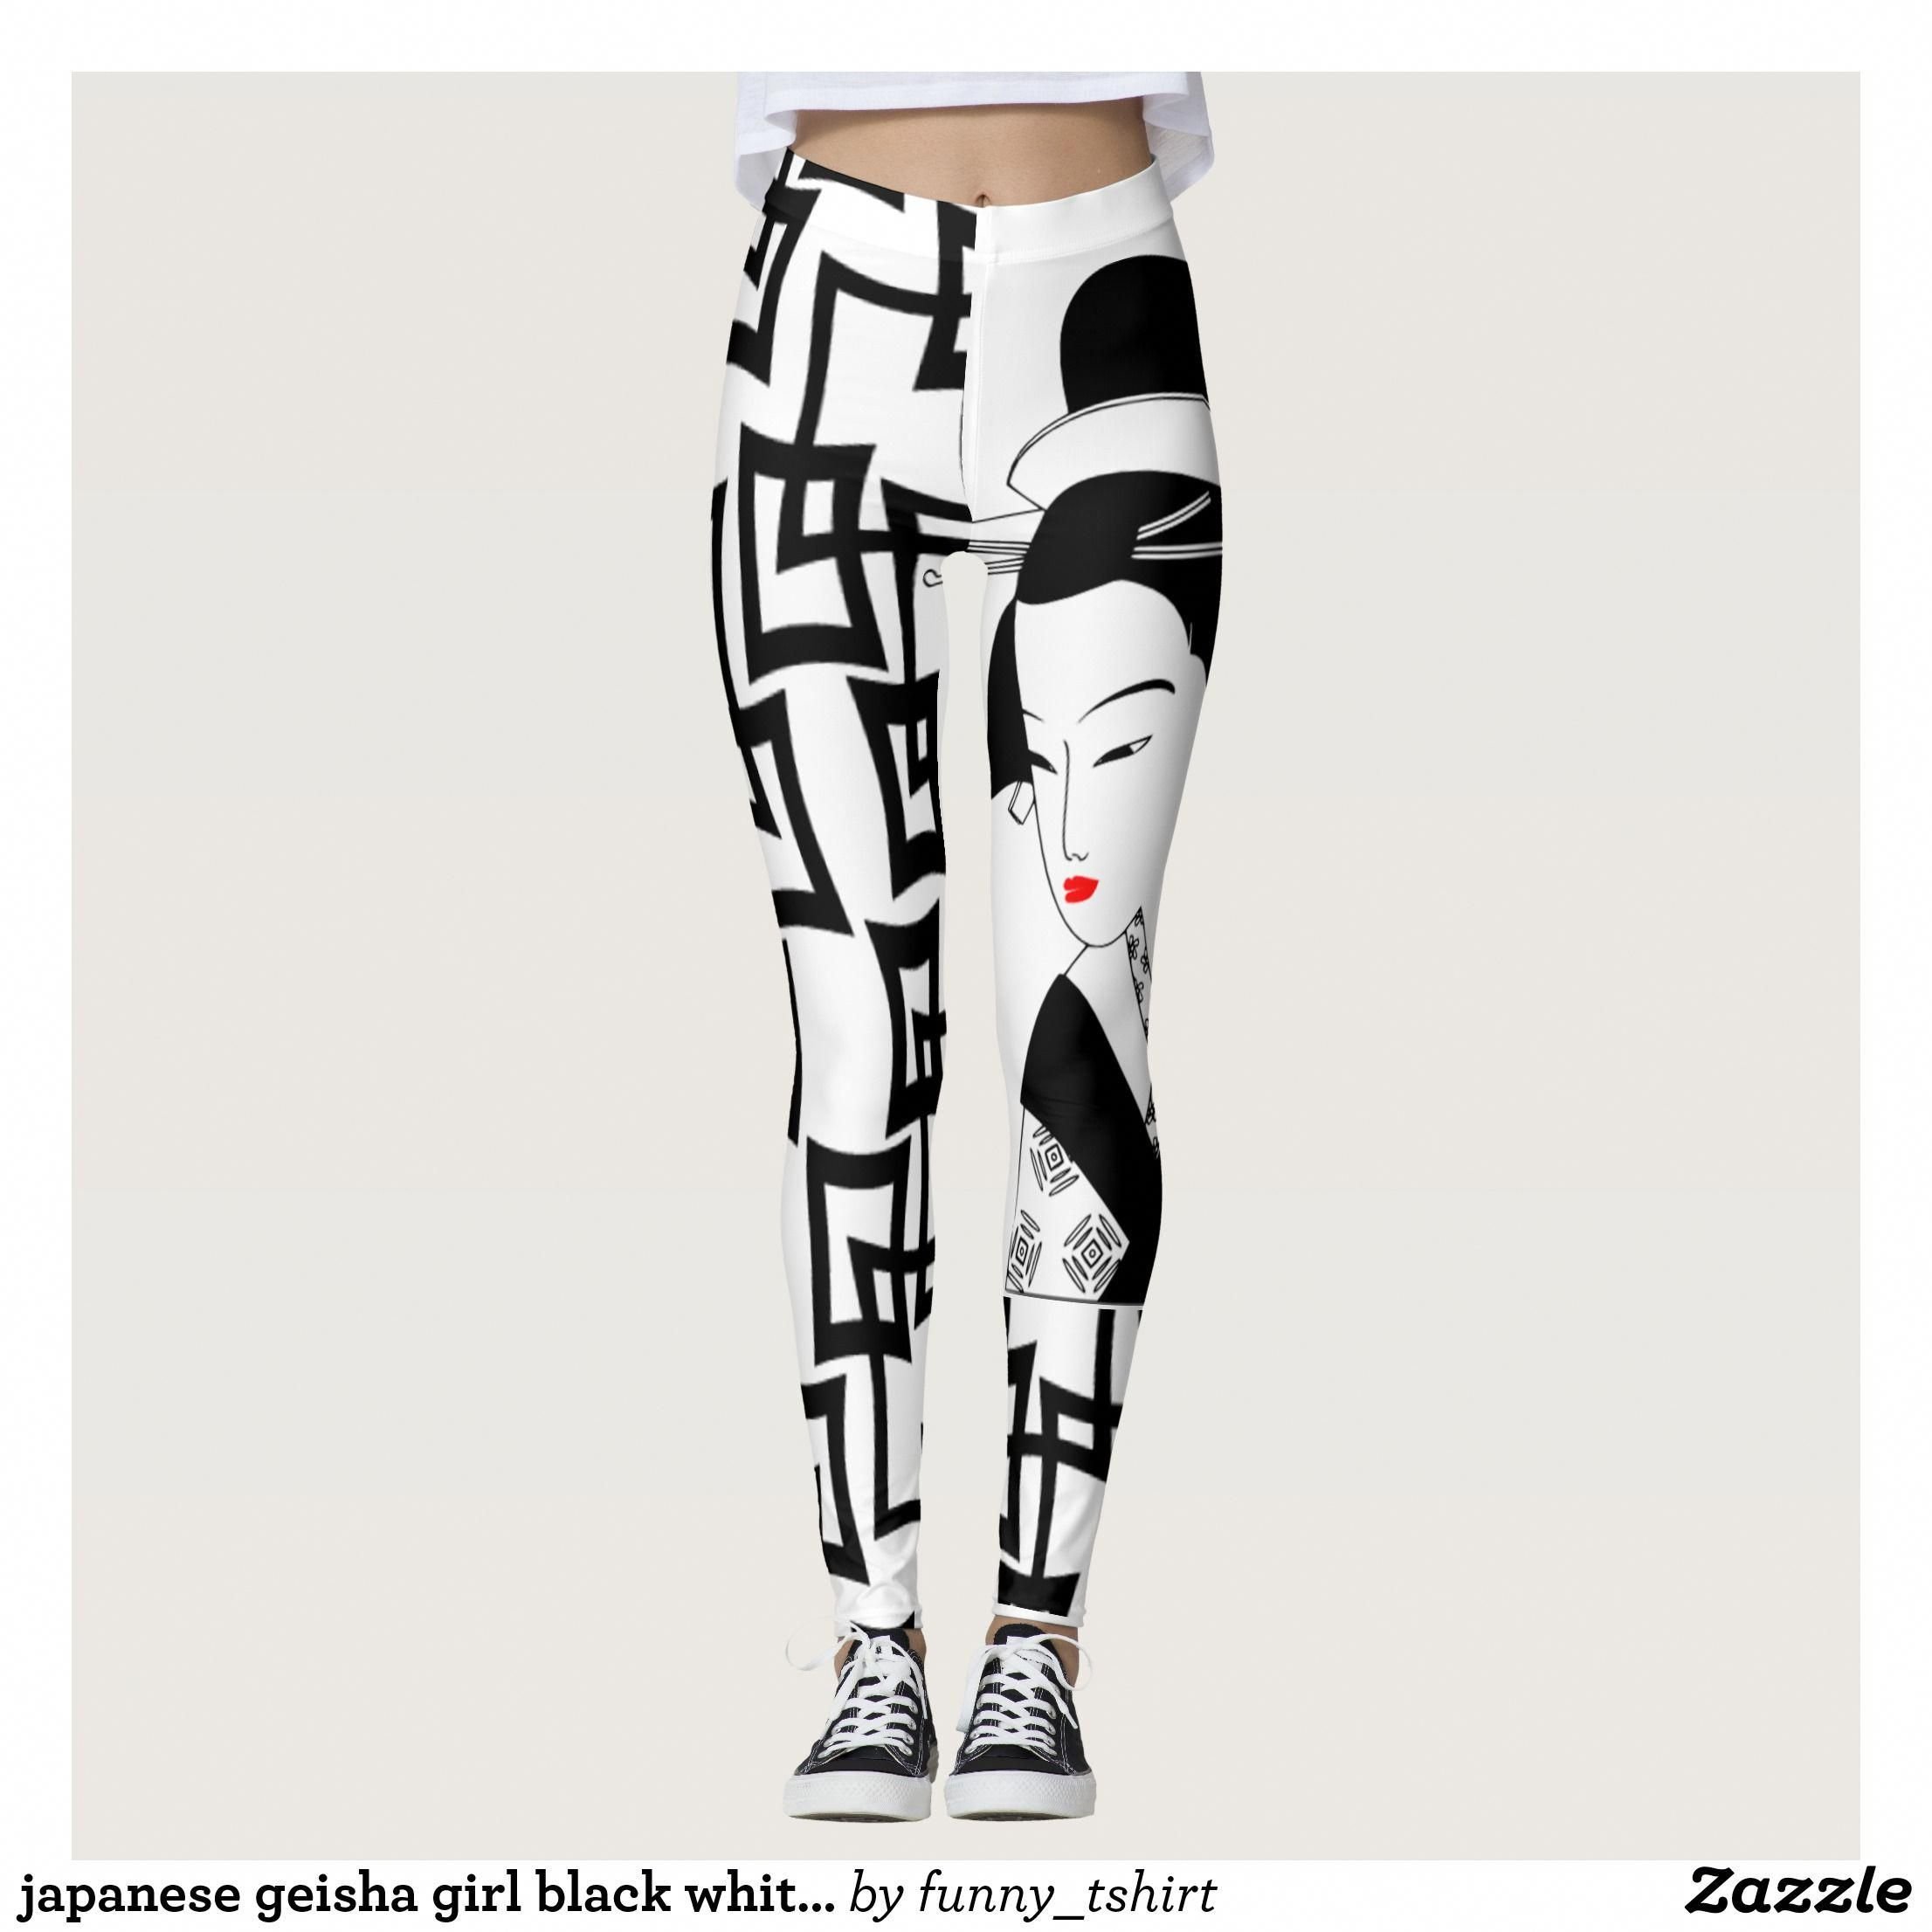 c3f70a12693e5 japanese geisha girl black white graphic leggings   Beautiful  Yoga Pants -   Exercise Leggings and  Running Tights - Health and Training Inspiration ...